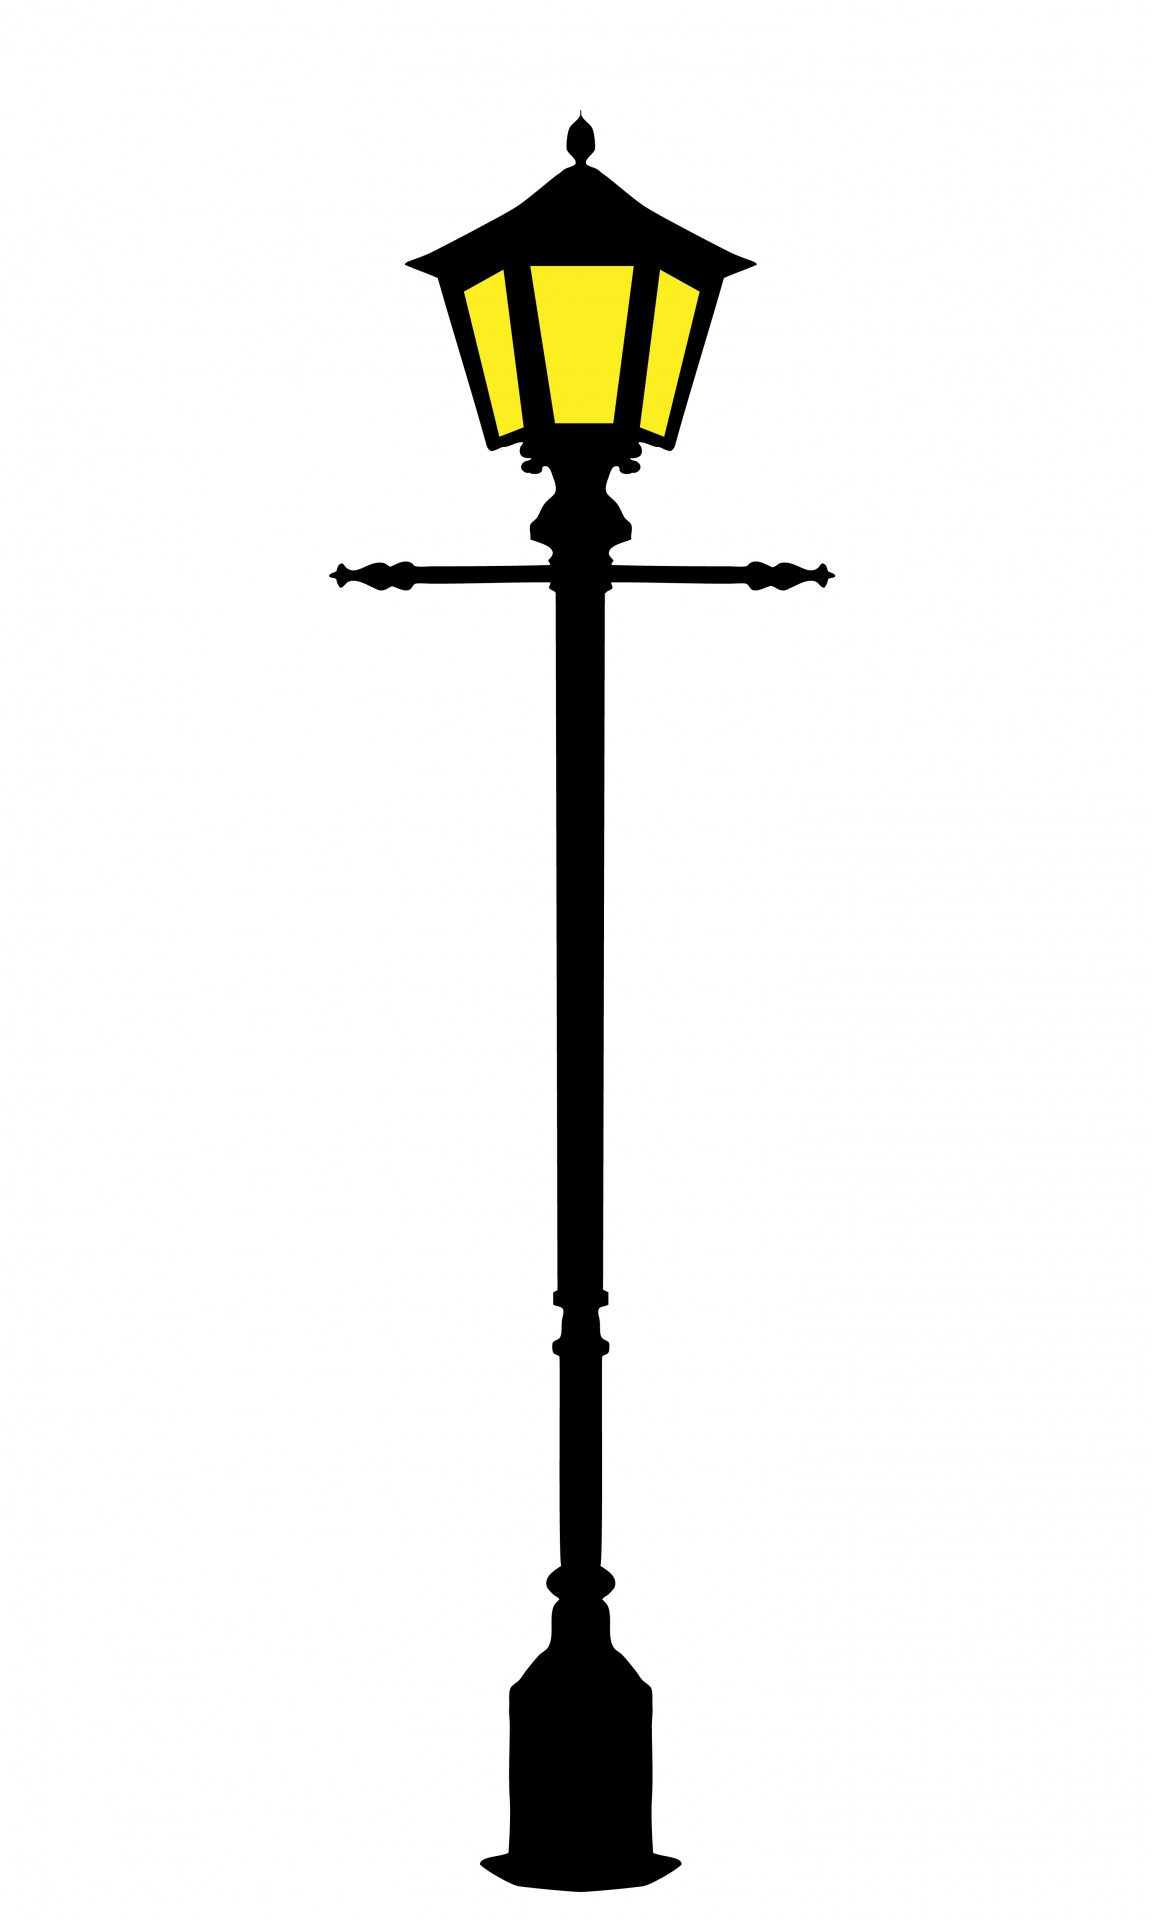 Streetlight clipart vintage lamp Lighting Stock Public Street Vintage